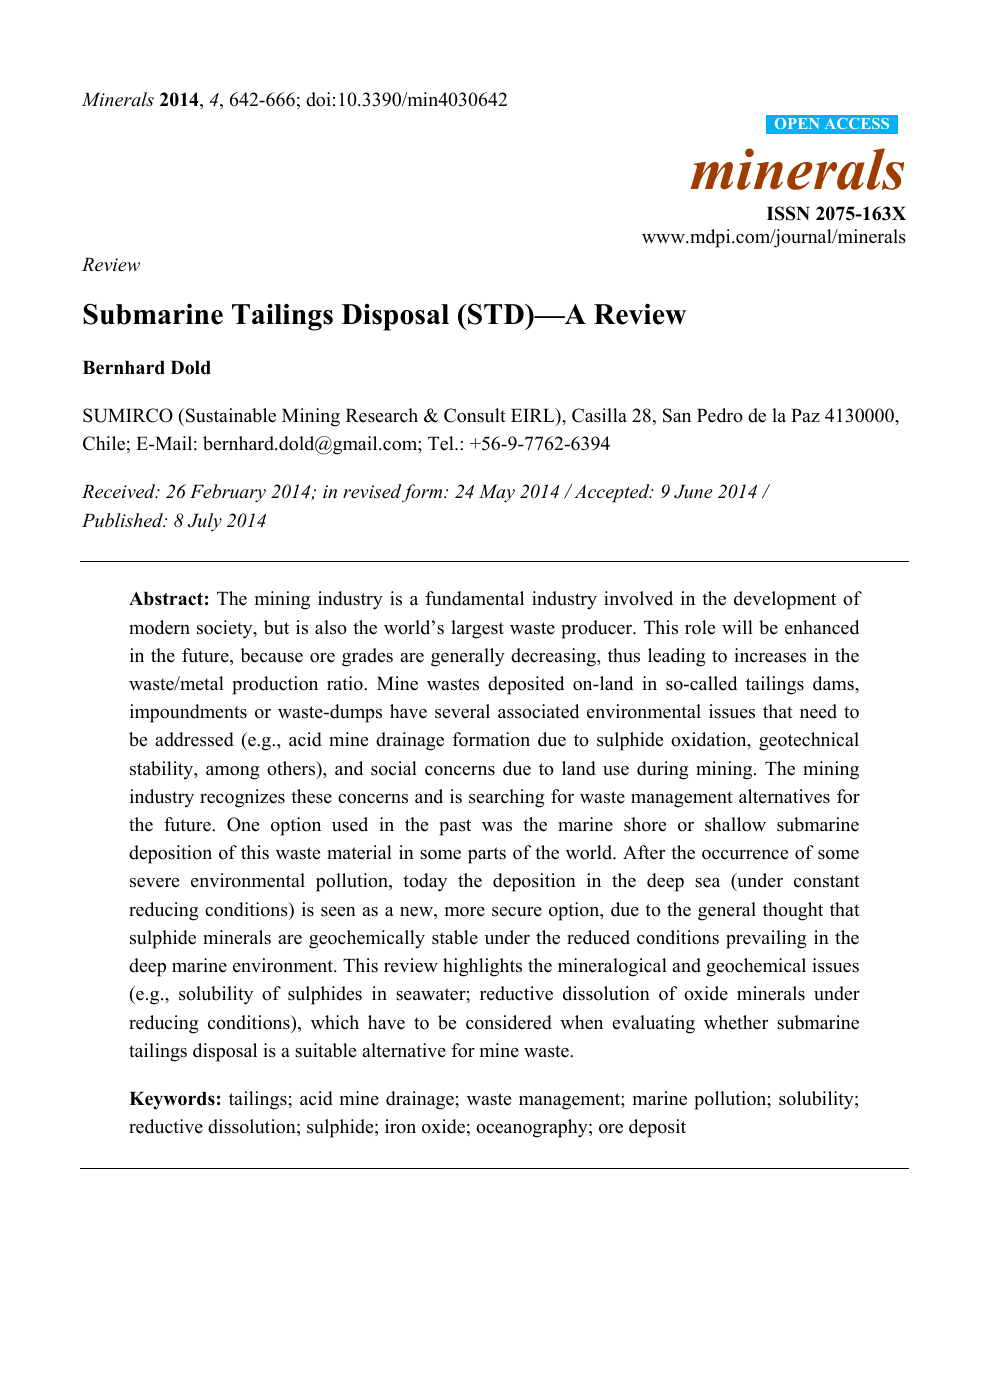 Submarine Tailings Disposal (STD)—A Review – topic of